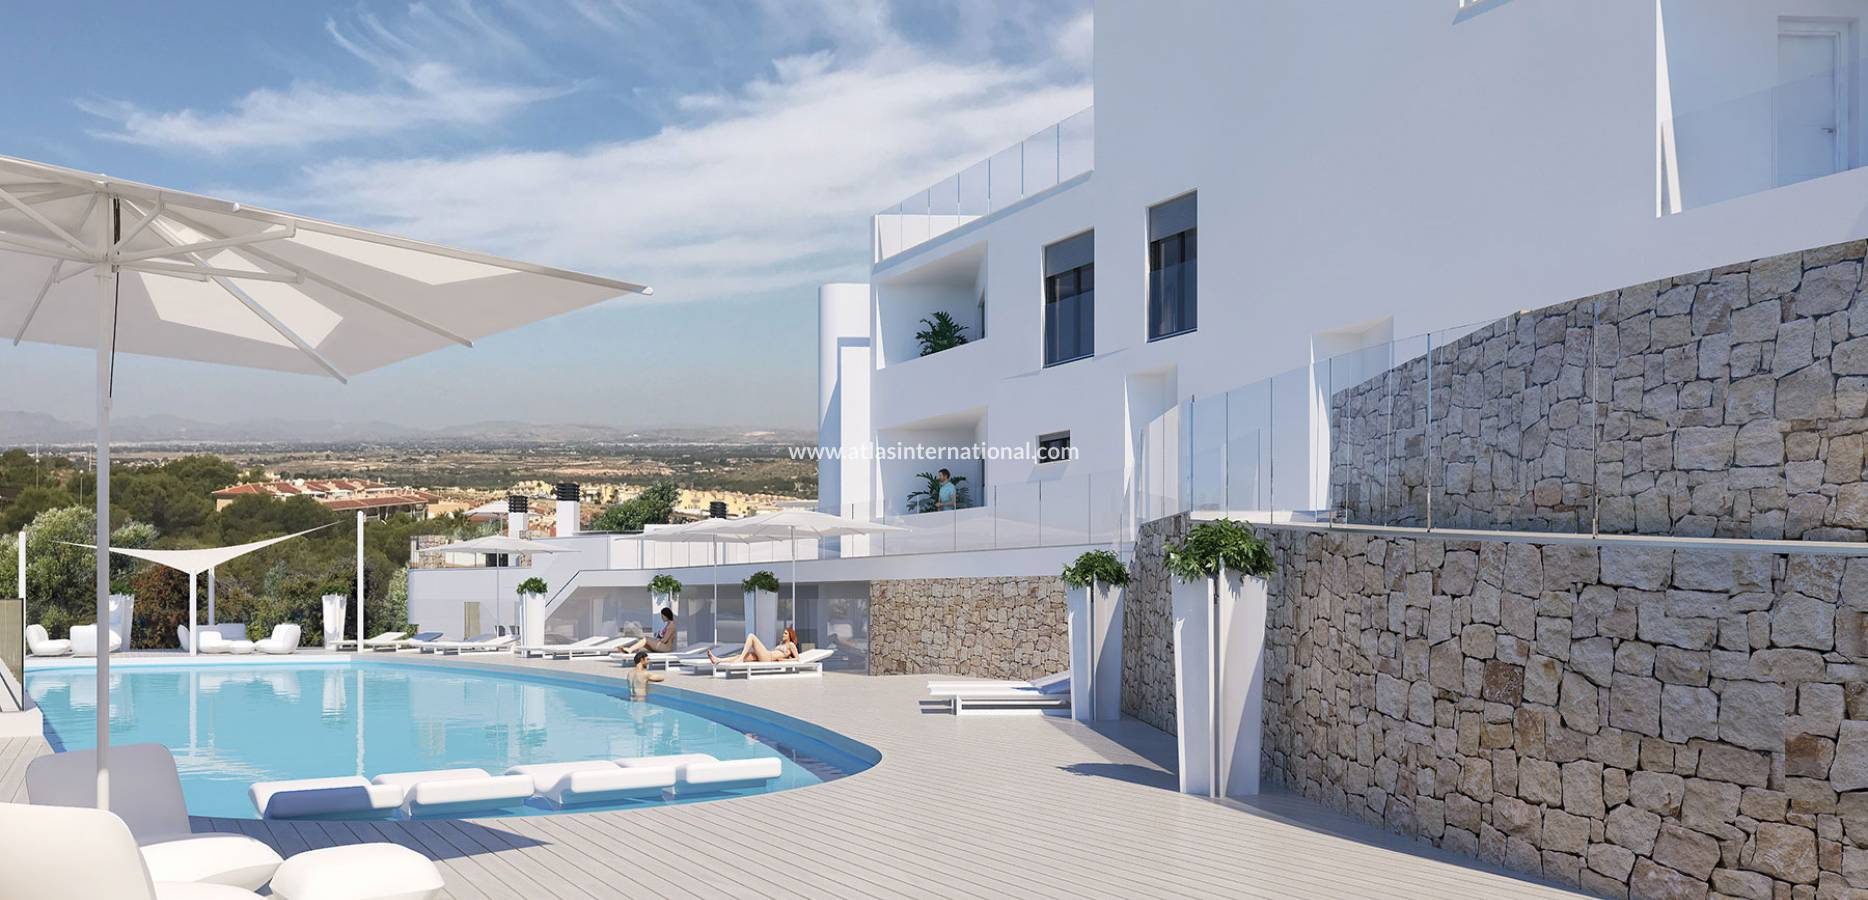 New Build - Duplex - Santa pola